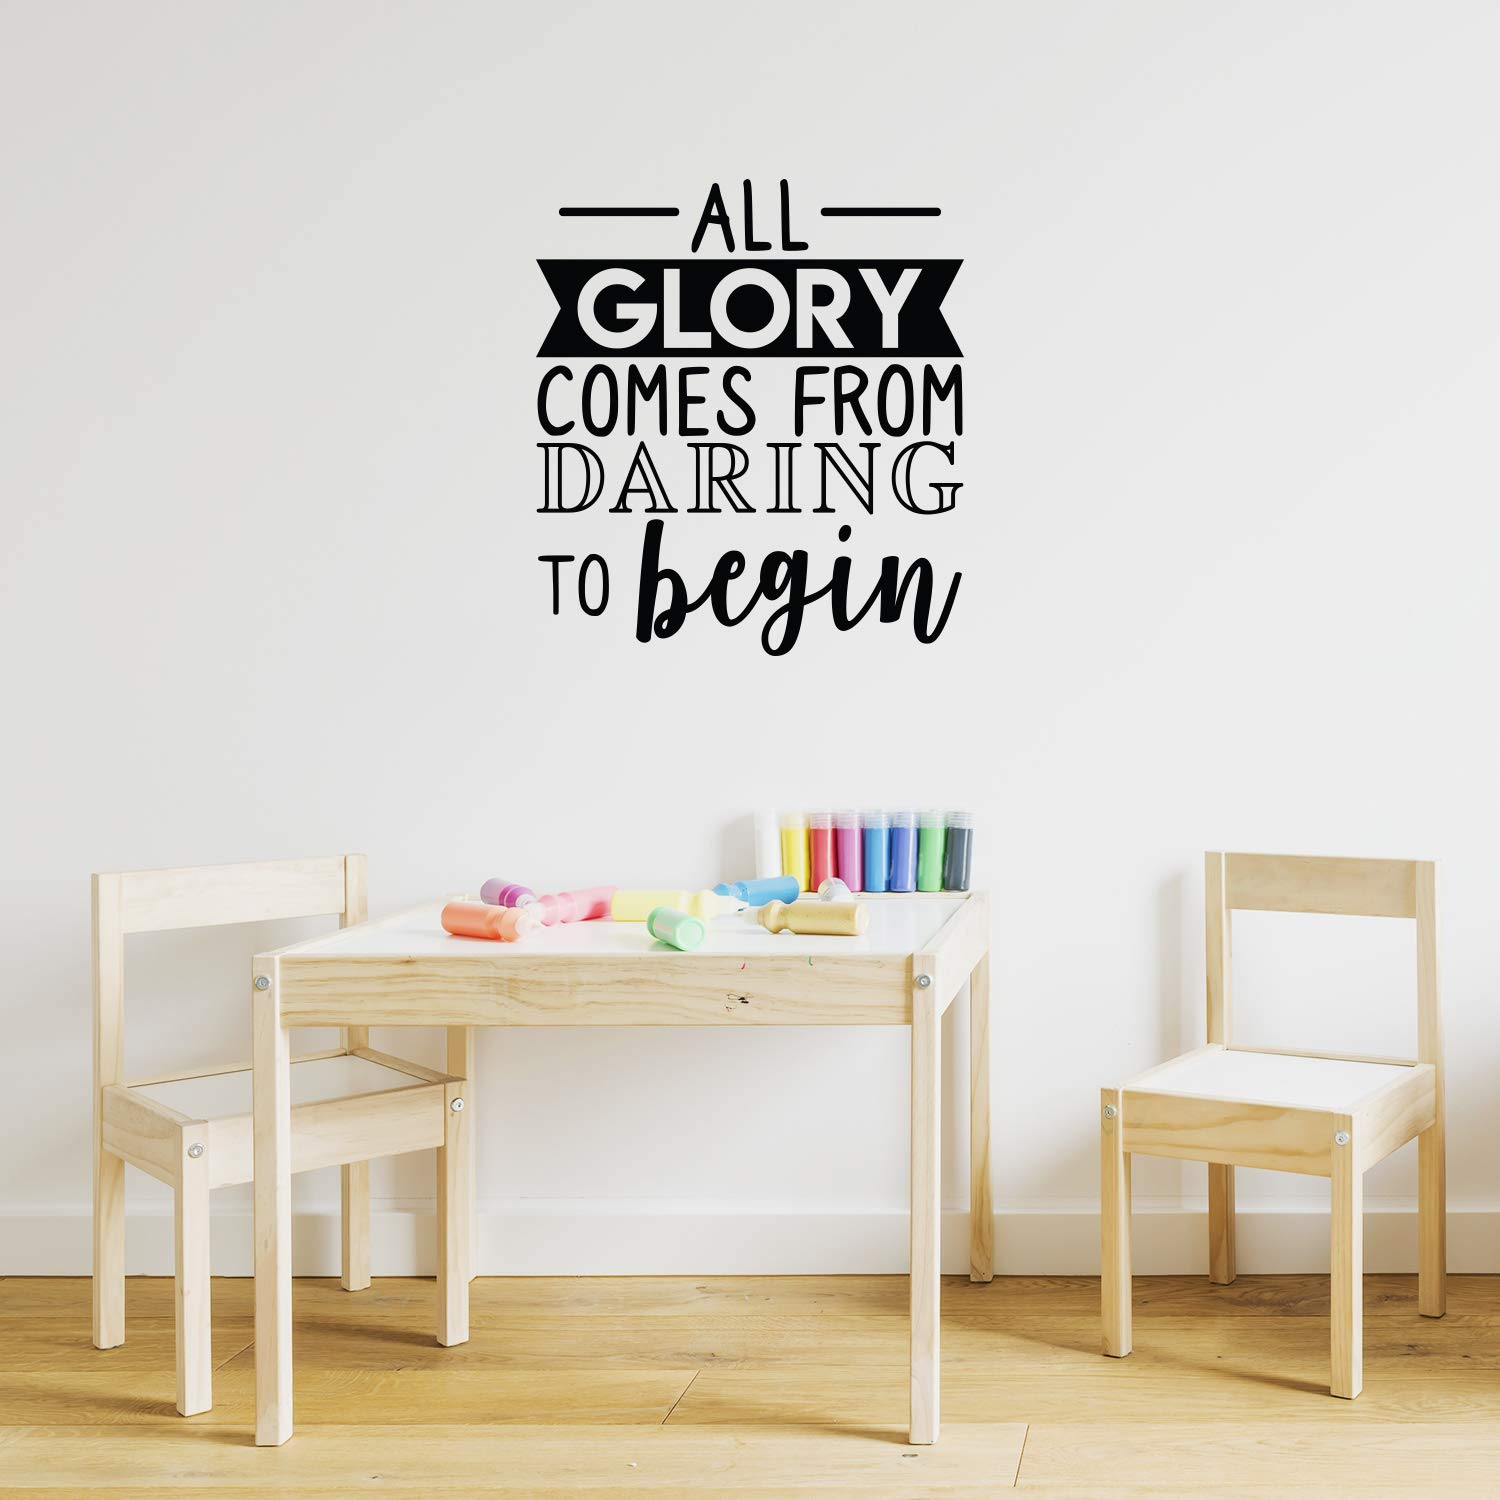 Vinyl Wall Art Decal - All Glory Comes from Daring to Begin - 24.5 x 22 - Motivational Trendy Optimistic Quote Sticker for Home Bedroom Playroom Office Work Gym Fitness Decor (Black)